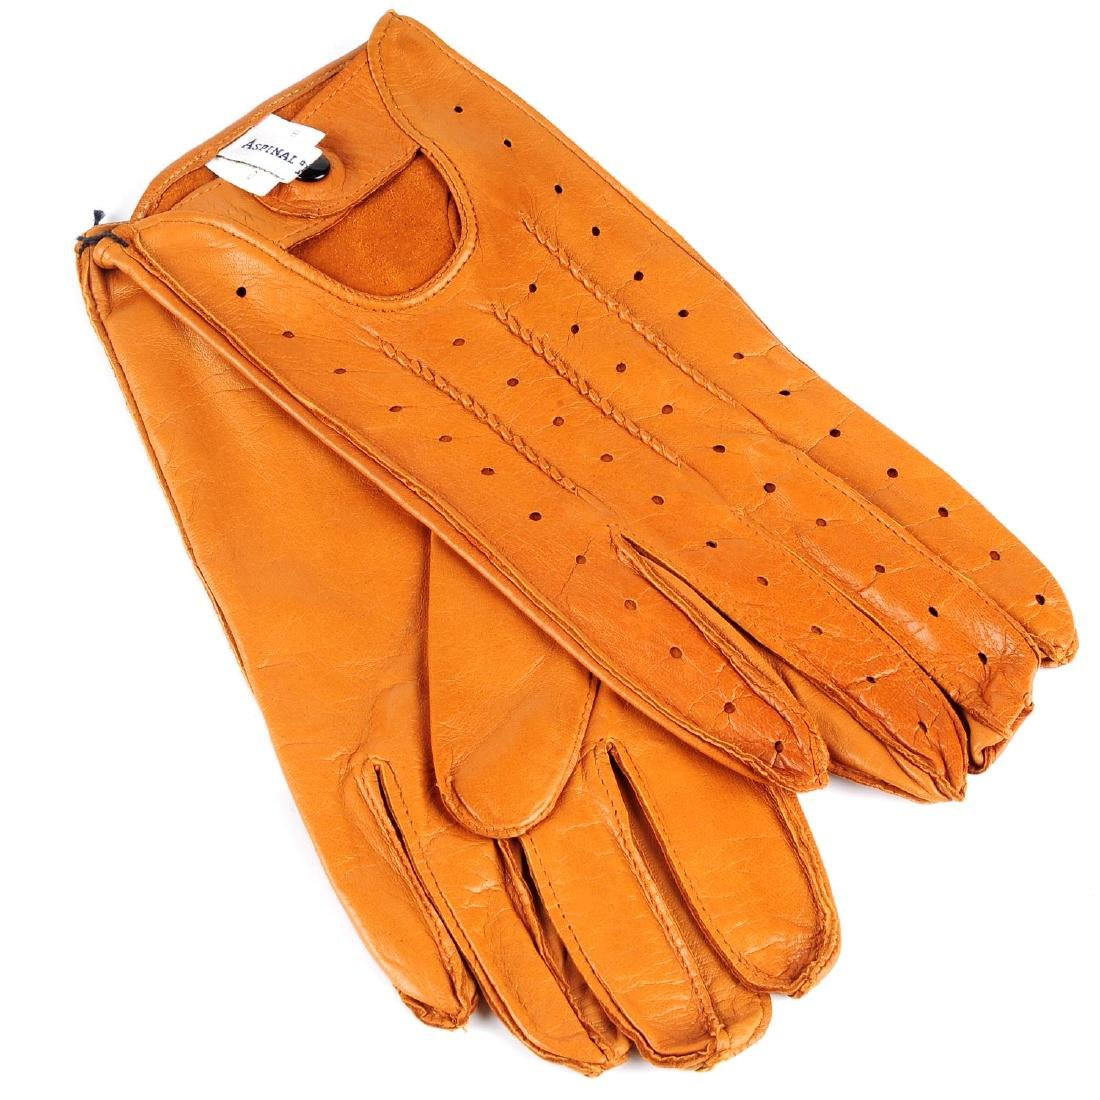 ASPINAL OF LONDON - a pair of leather gloves. Crafted